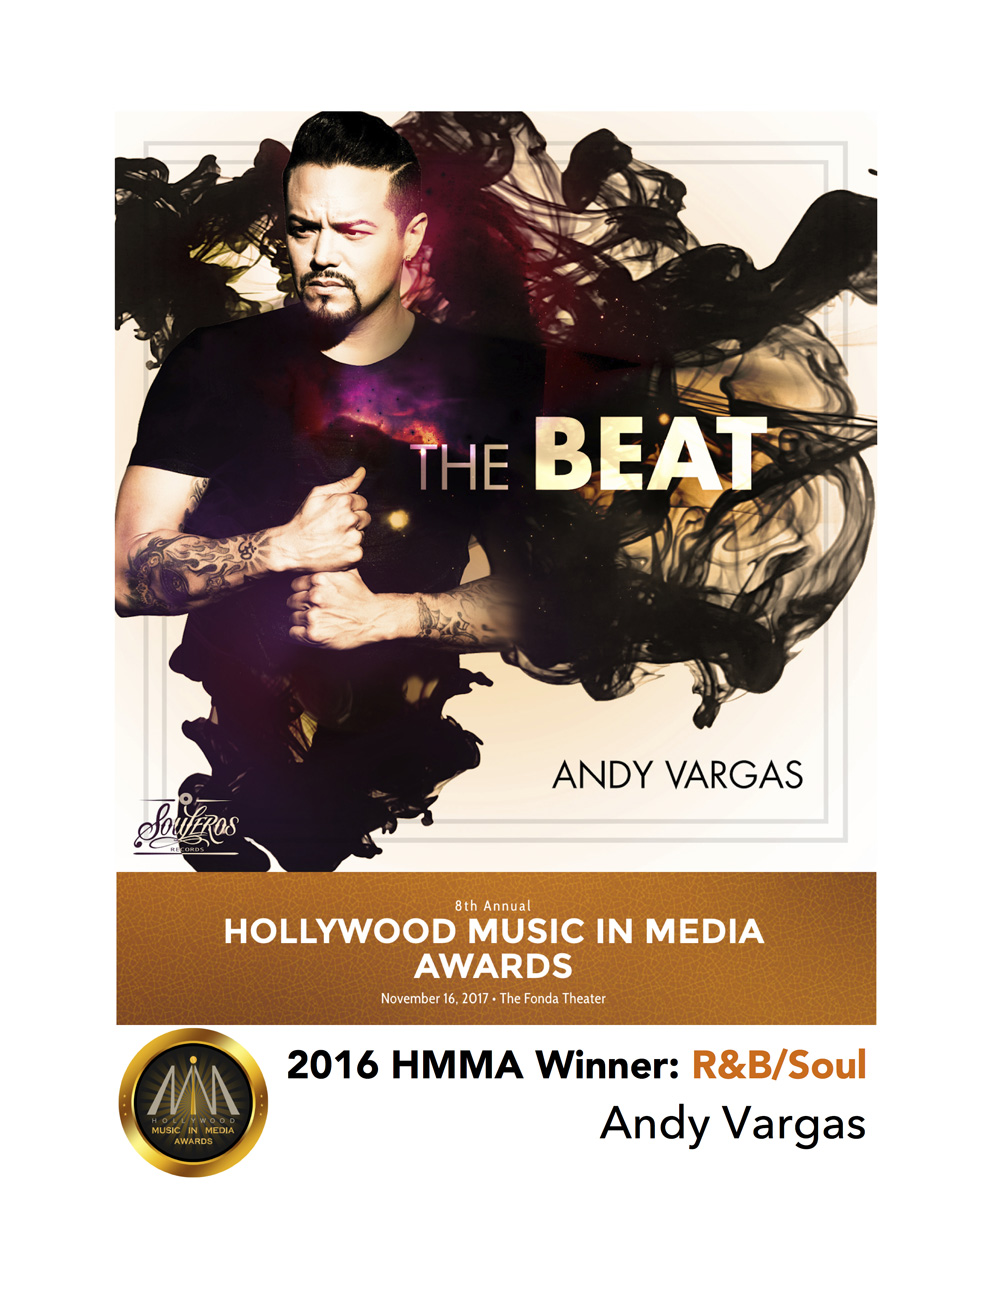 andy-vargas-the-beat-2016-hmma-winner-producer-songwriter